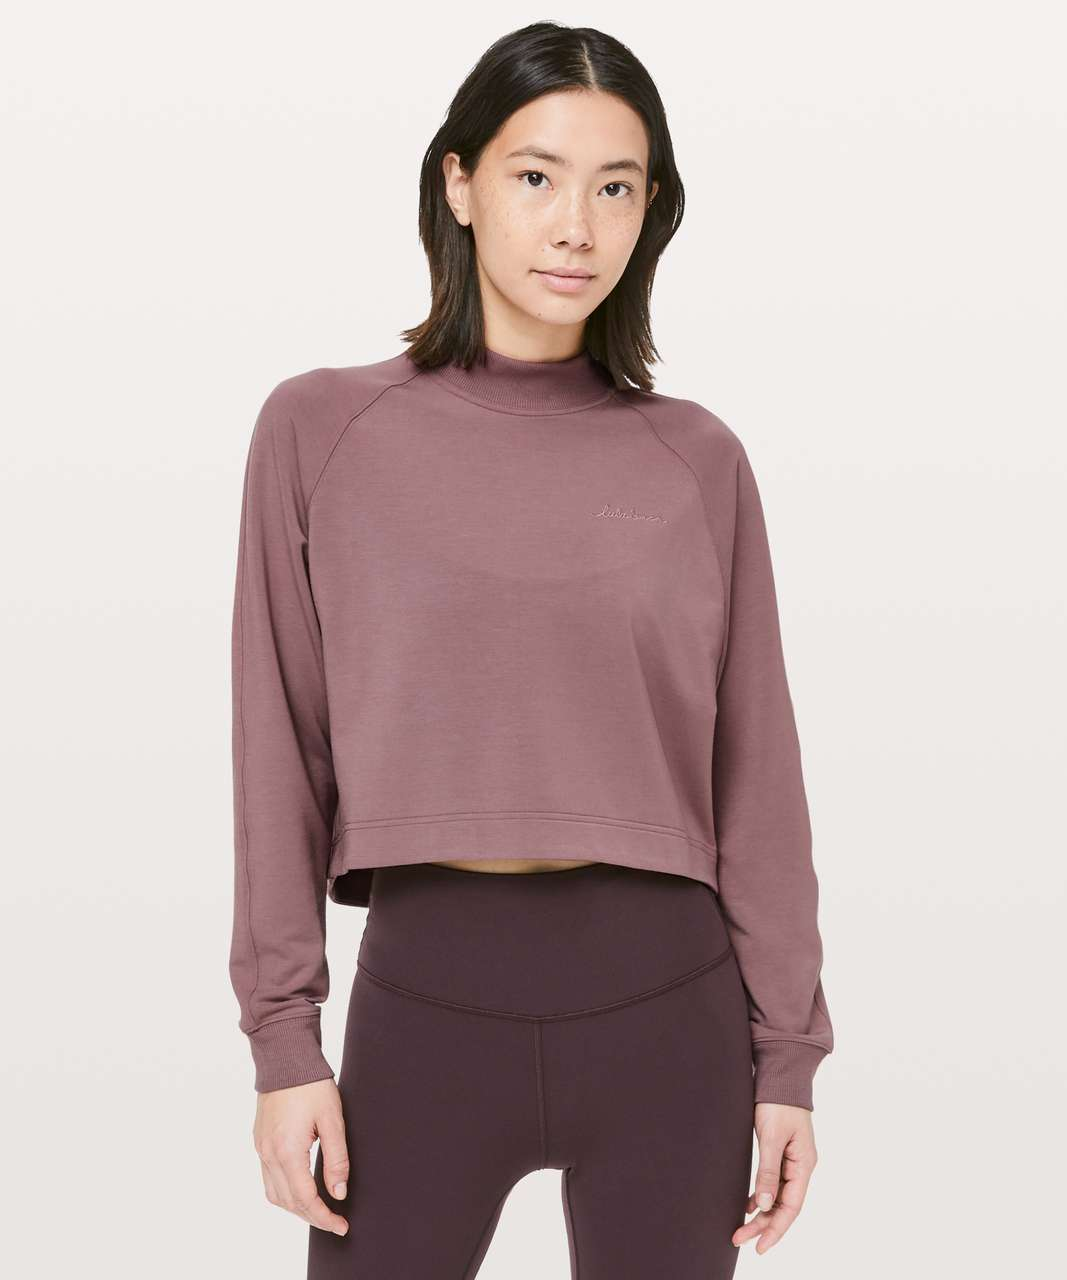 Lululemon Up High Pullover - Spanish Oak